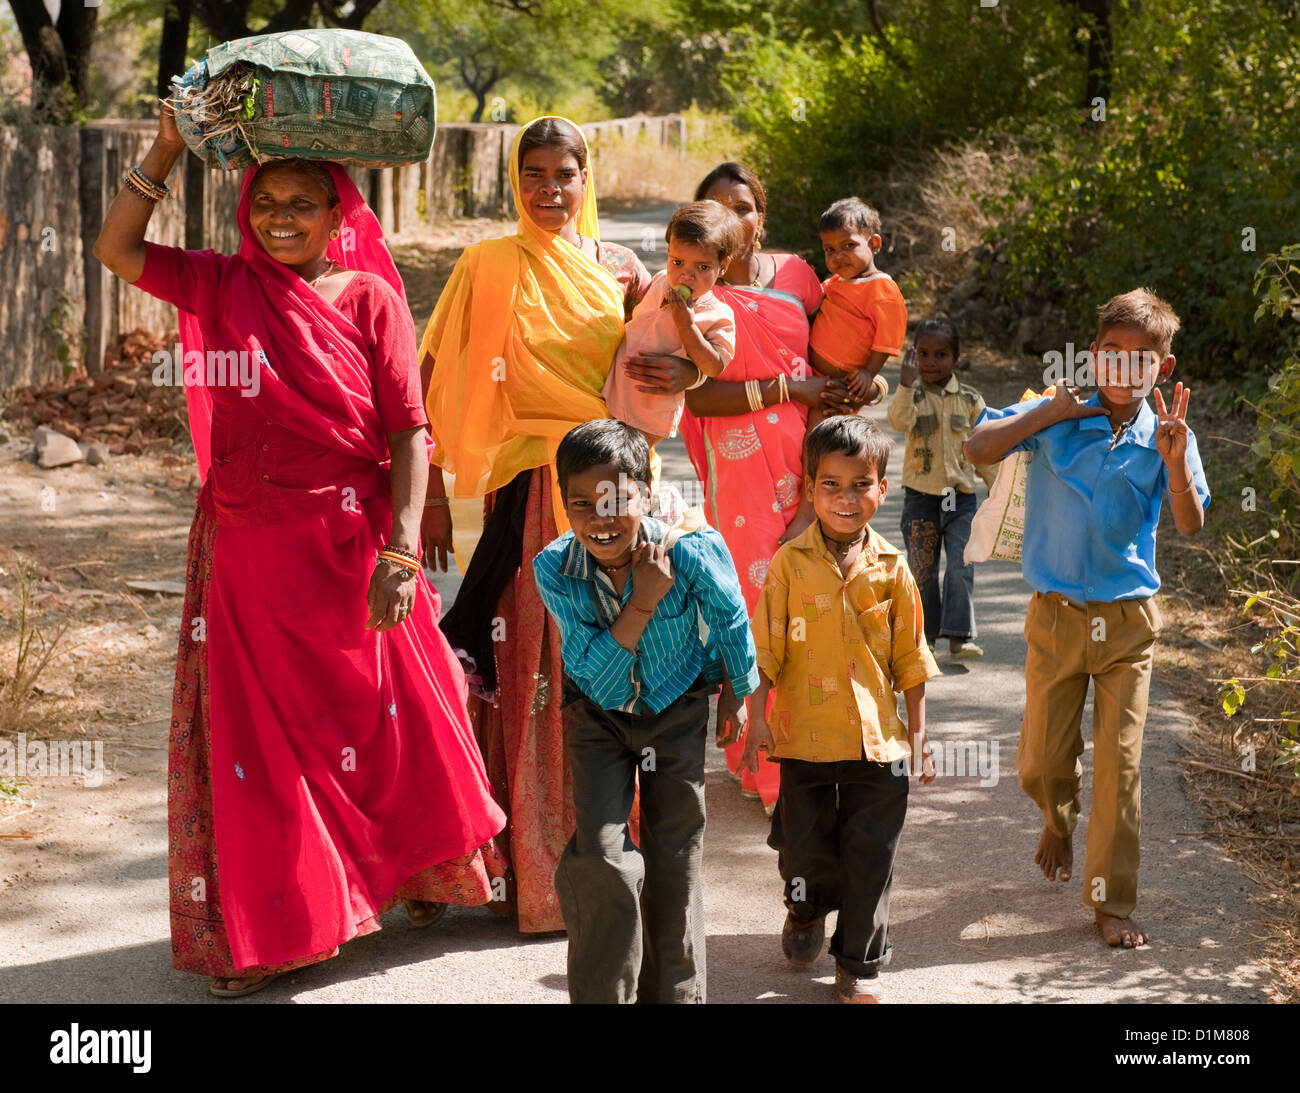 A happy smiling colorful Indian family group of women boys girls and a baby return from shopping on a quiet road - Stock Image